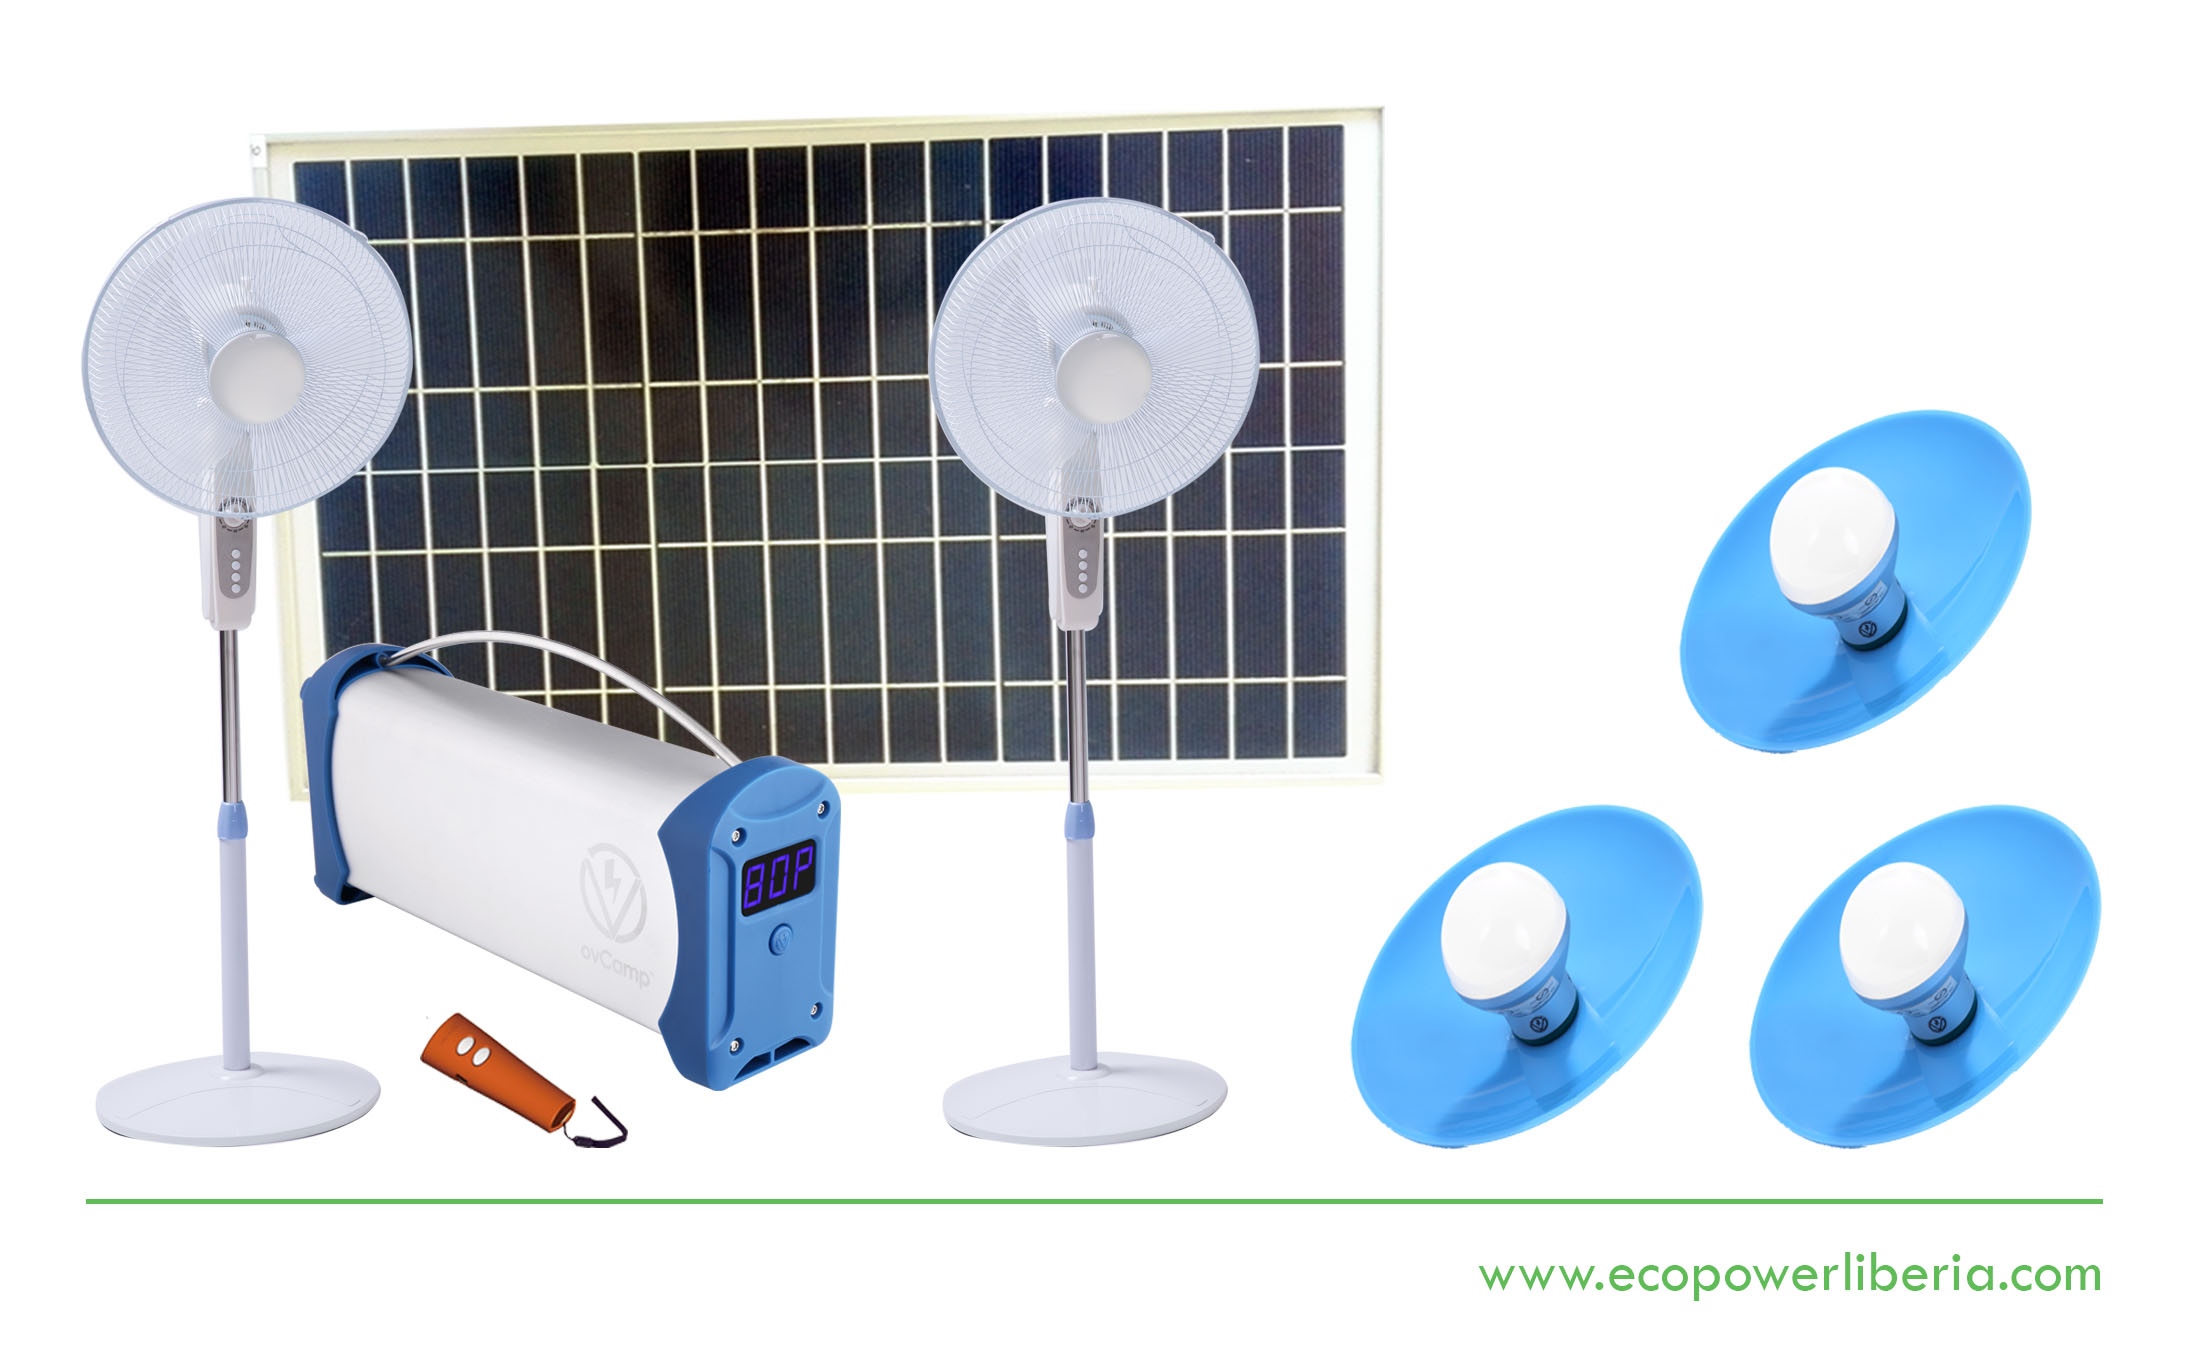 Package 6Eco